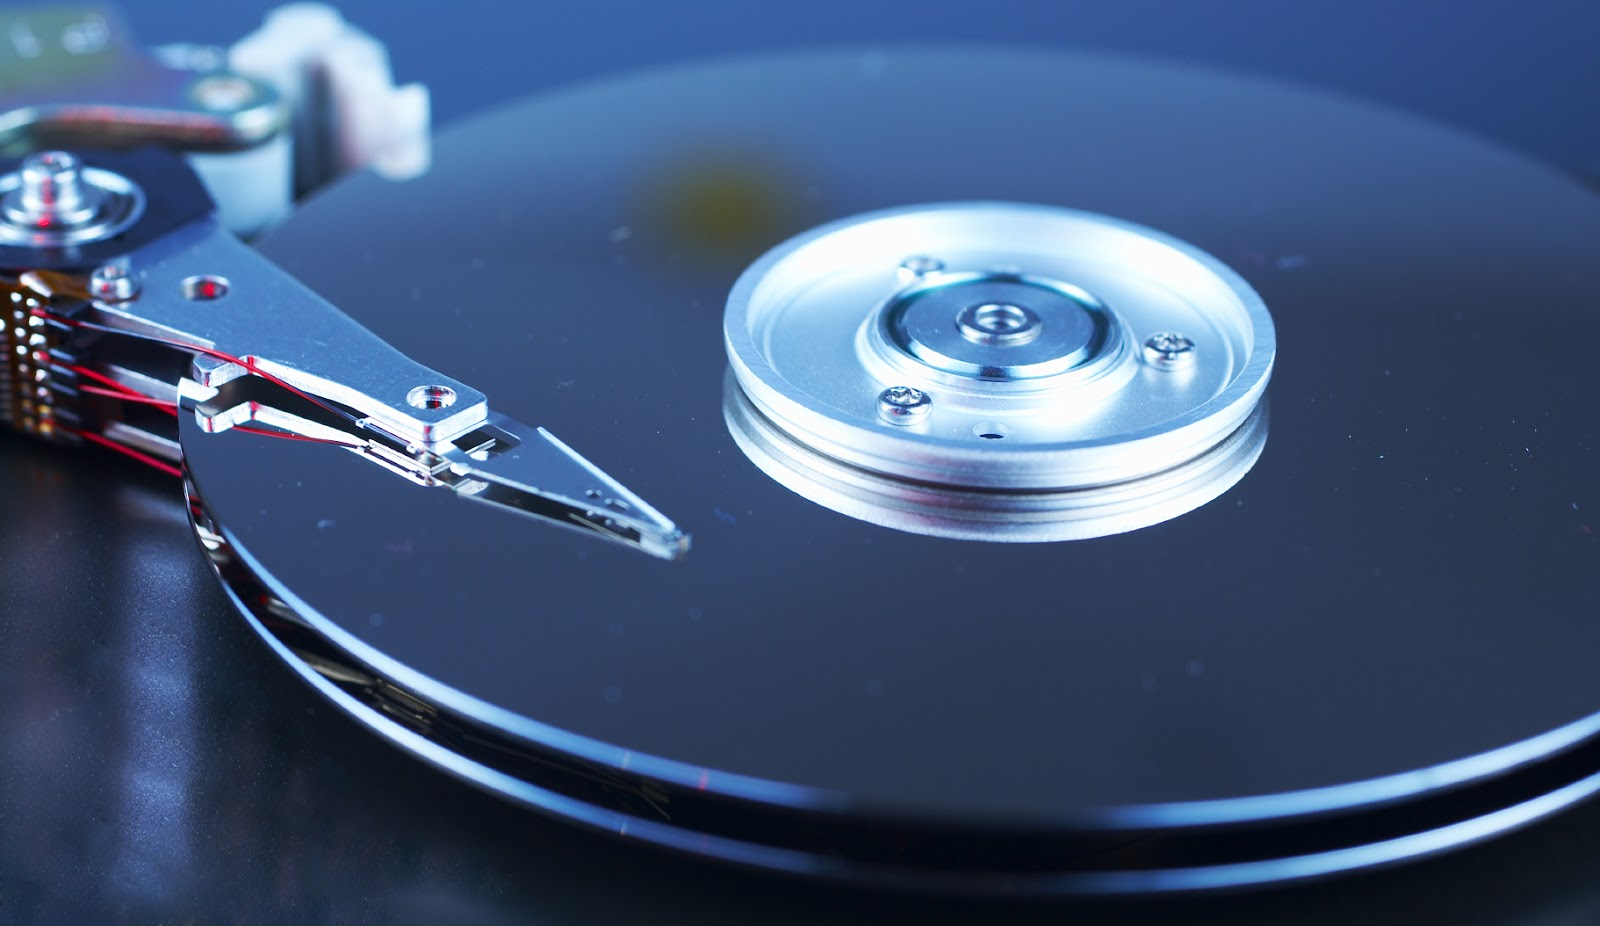 Wallpapers Wallpaper 30 Hard Drive Data Recovery Stock